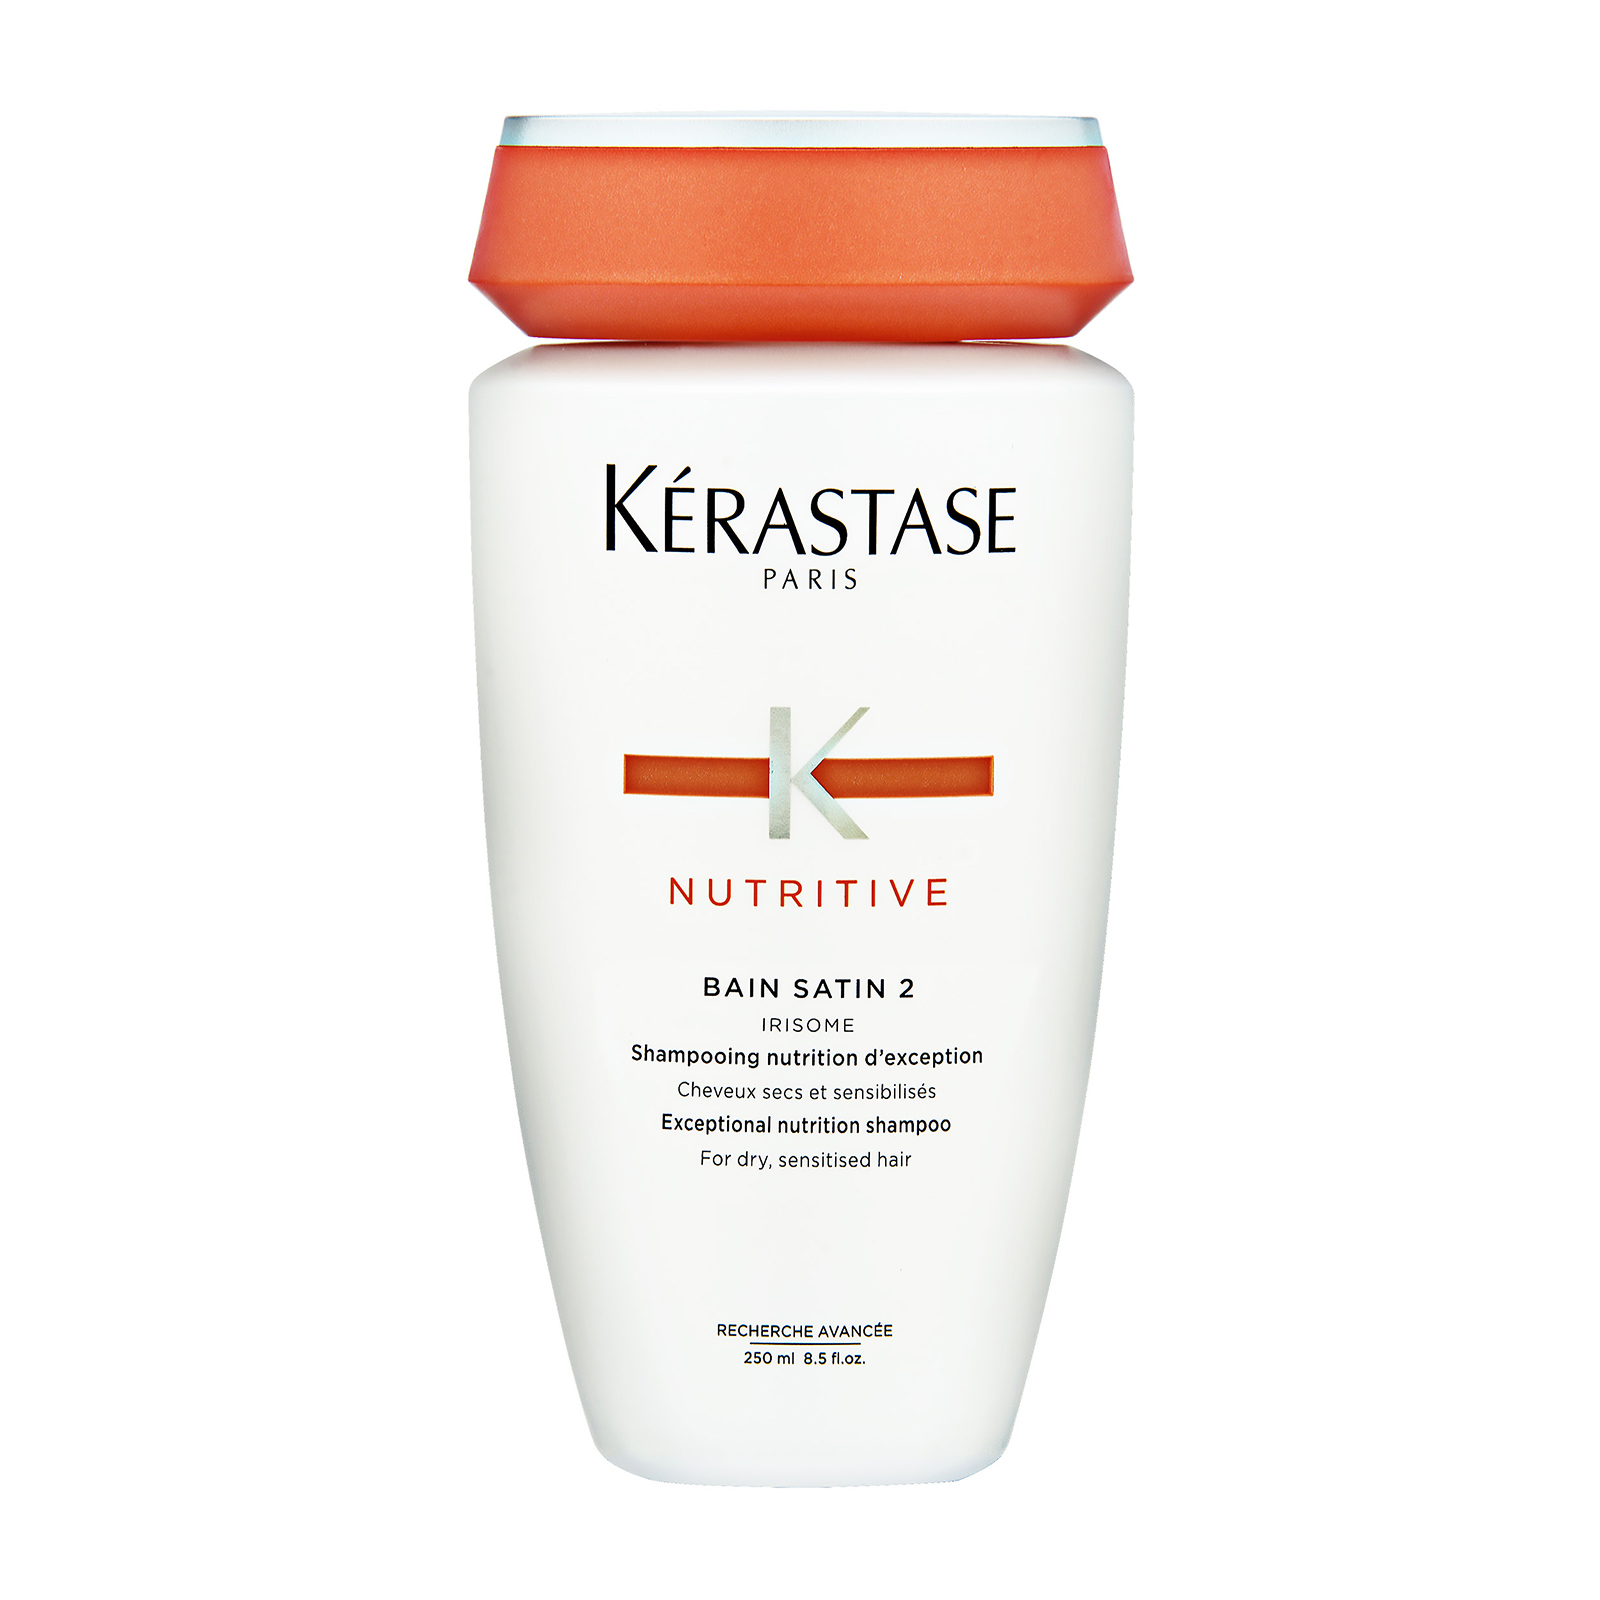 Kérastase Paris Nutritive  Bain Satin 2 Irisome Exceptional Nutrition Shampoo (For Dry to Sensitised Hair) 8.5oz, 250ml